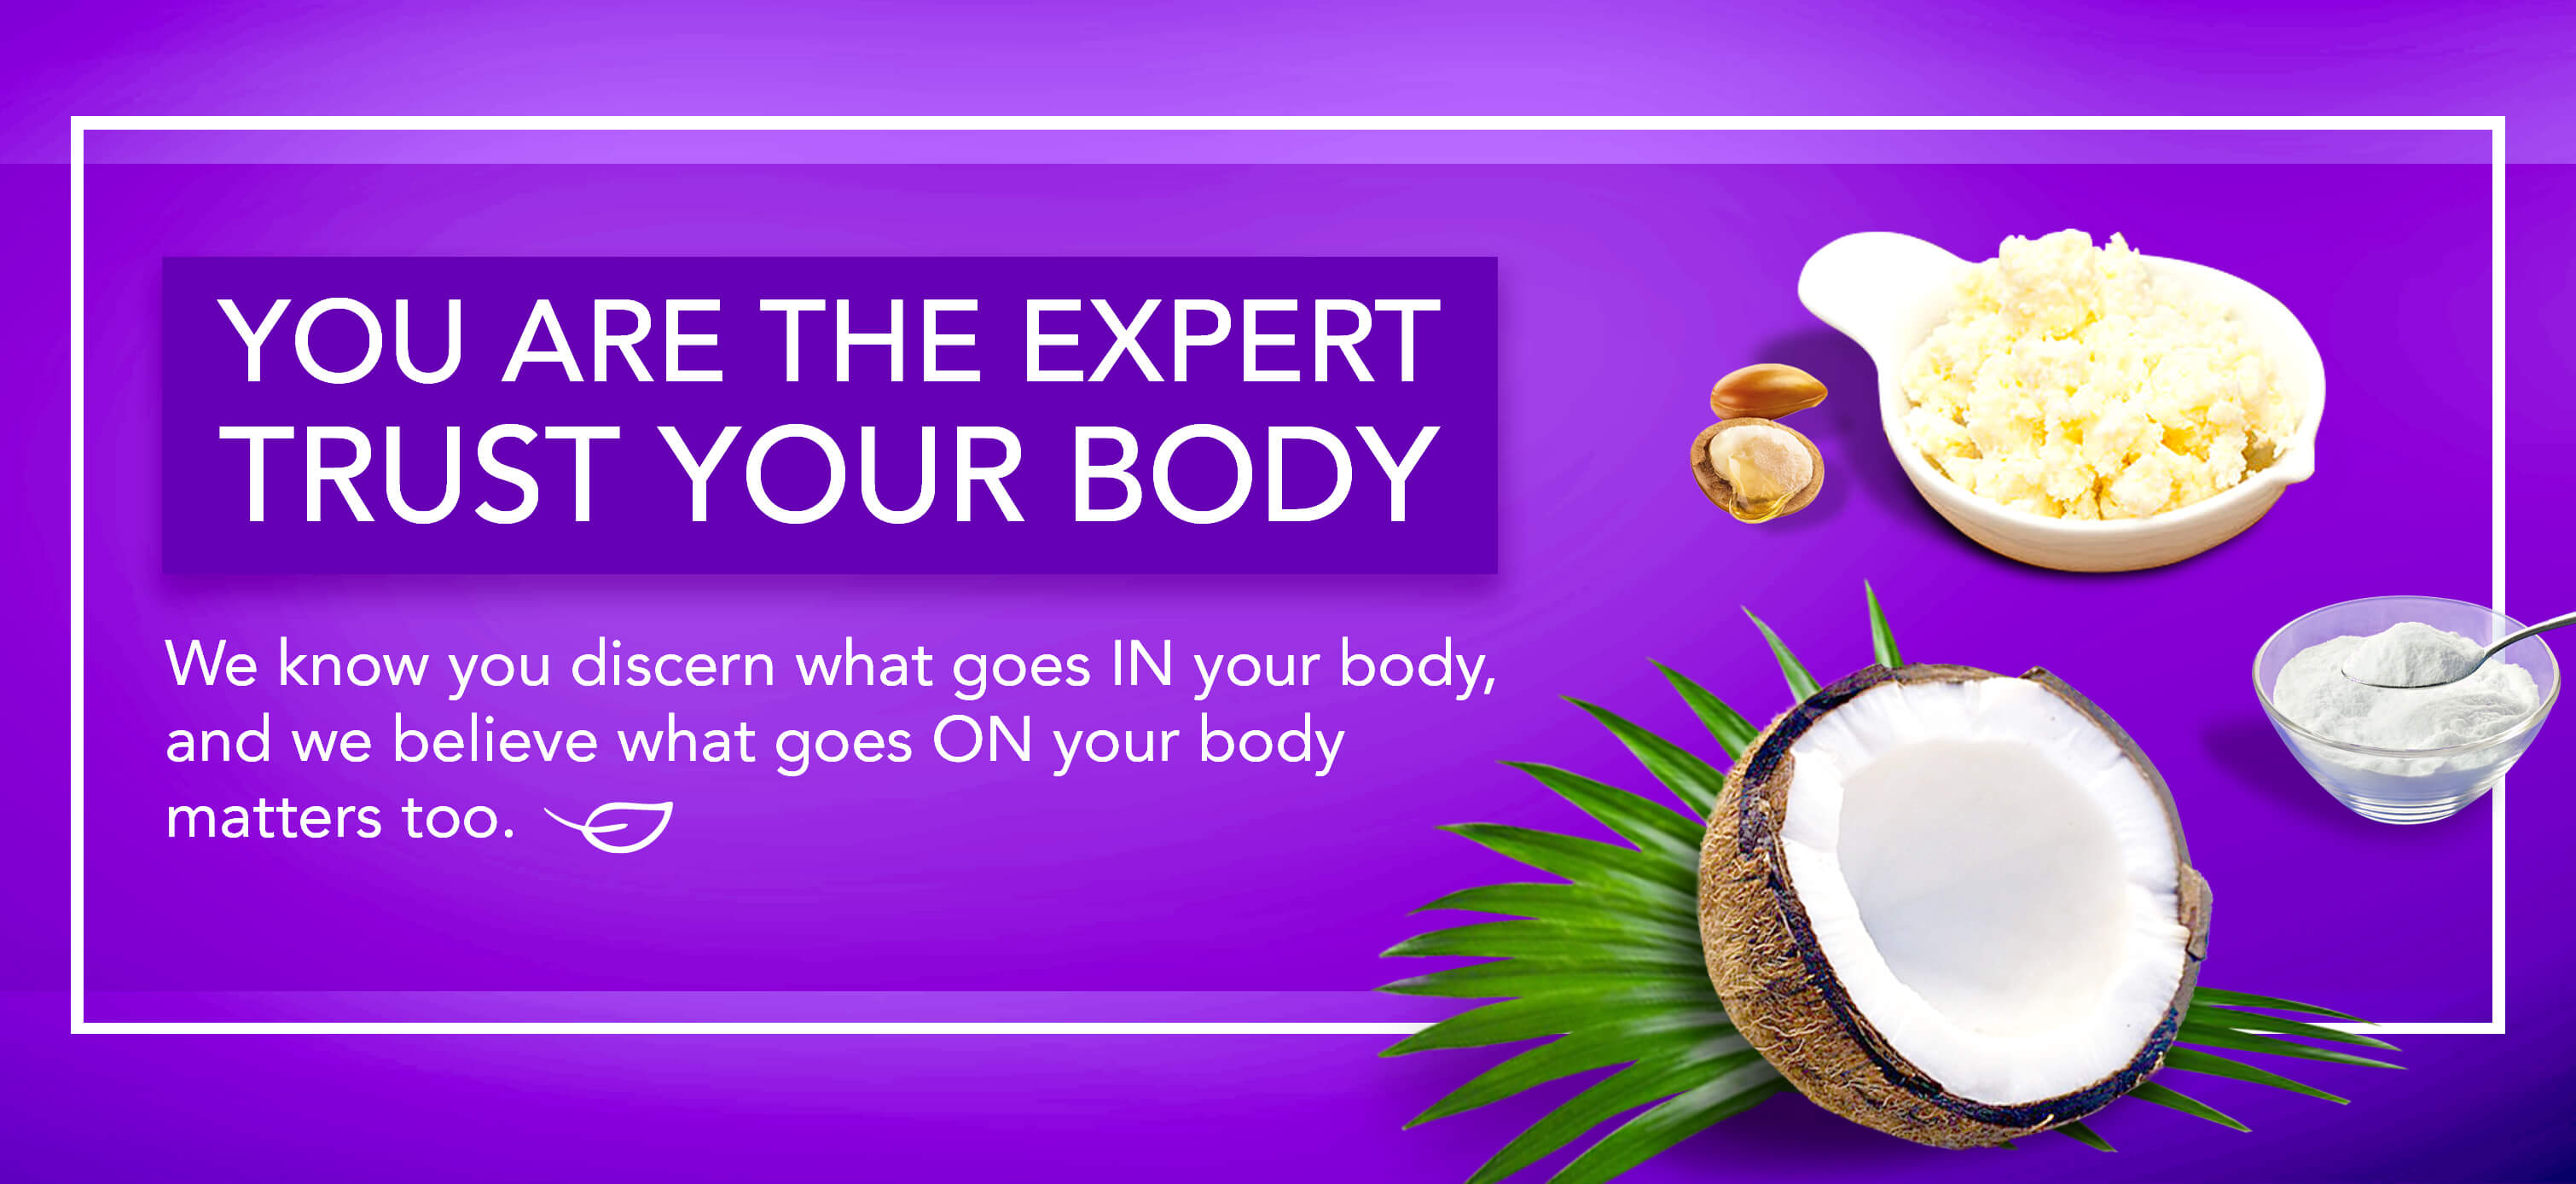 You are the expert, trust your body.